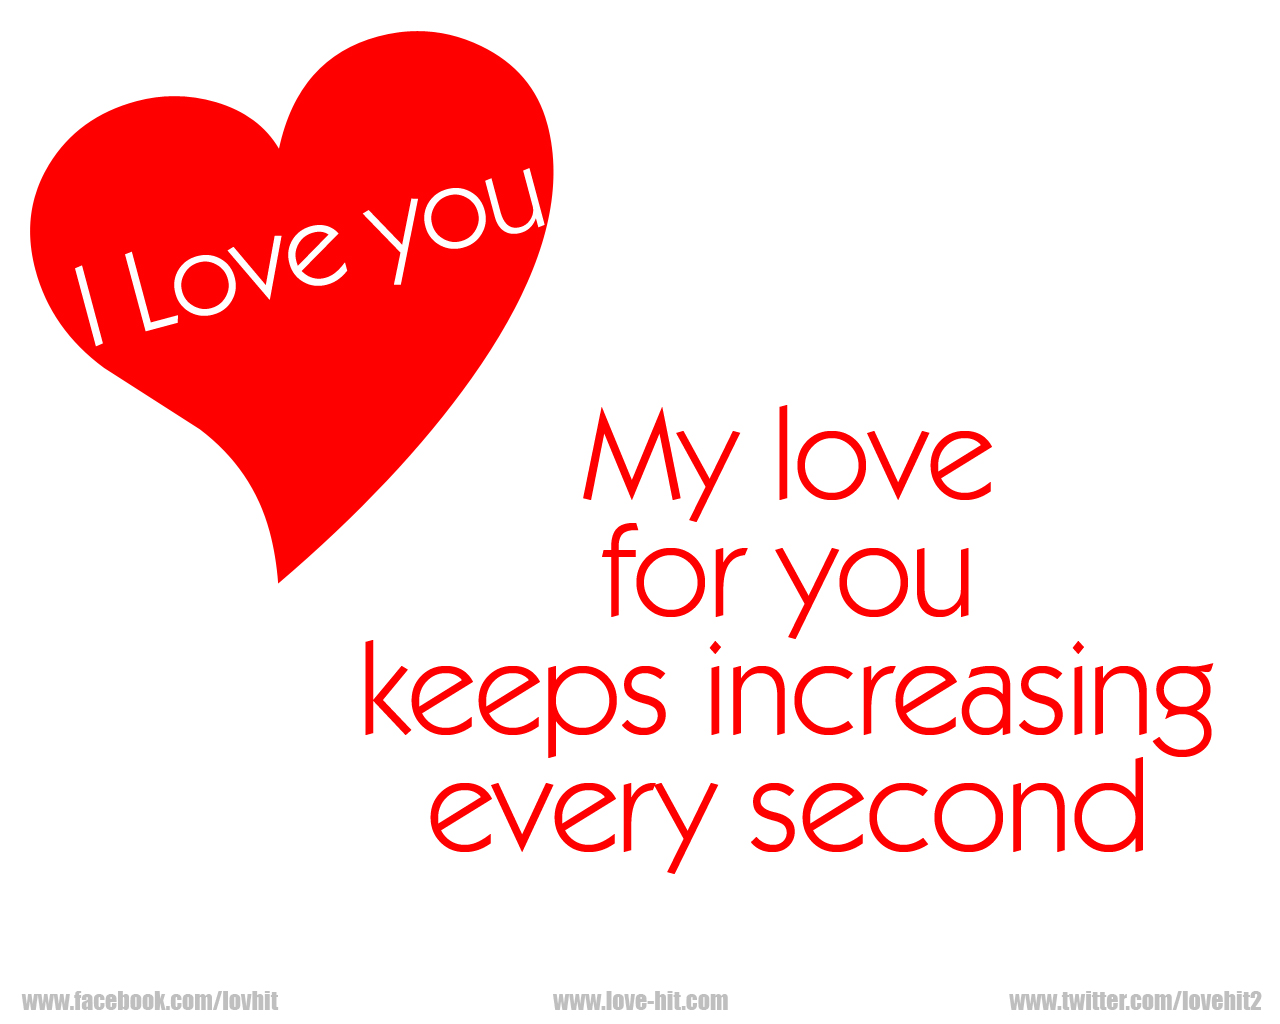 http://kundanpura.yn.lt/go/love/images/My-love-for-you-keeps-increasing-every-second.jpg